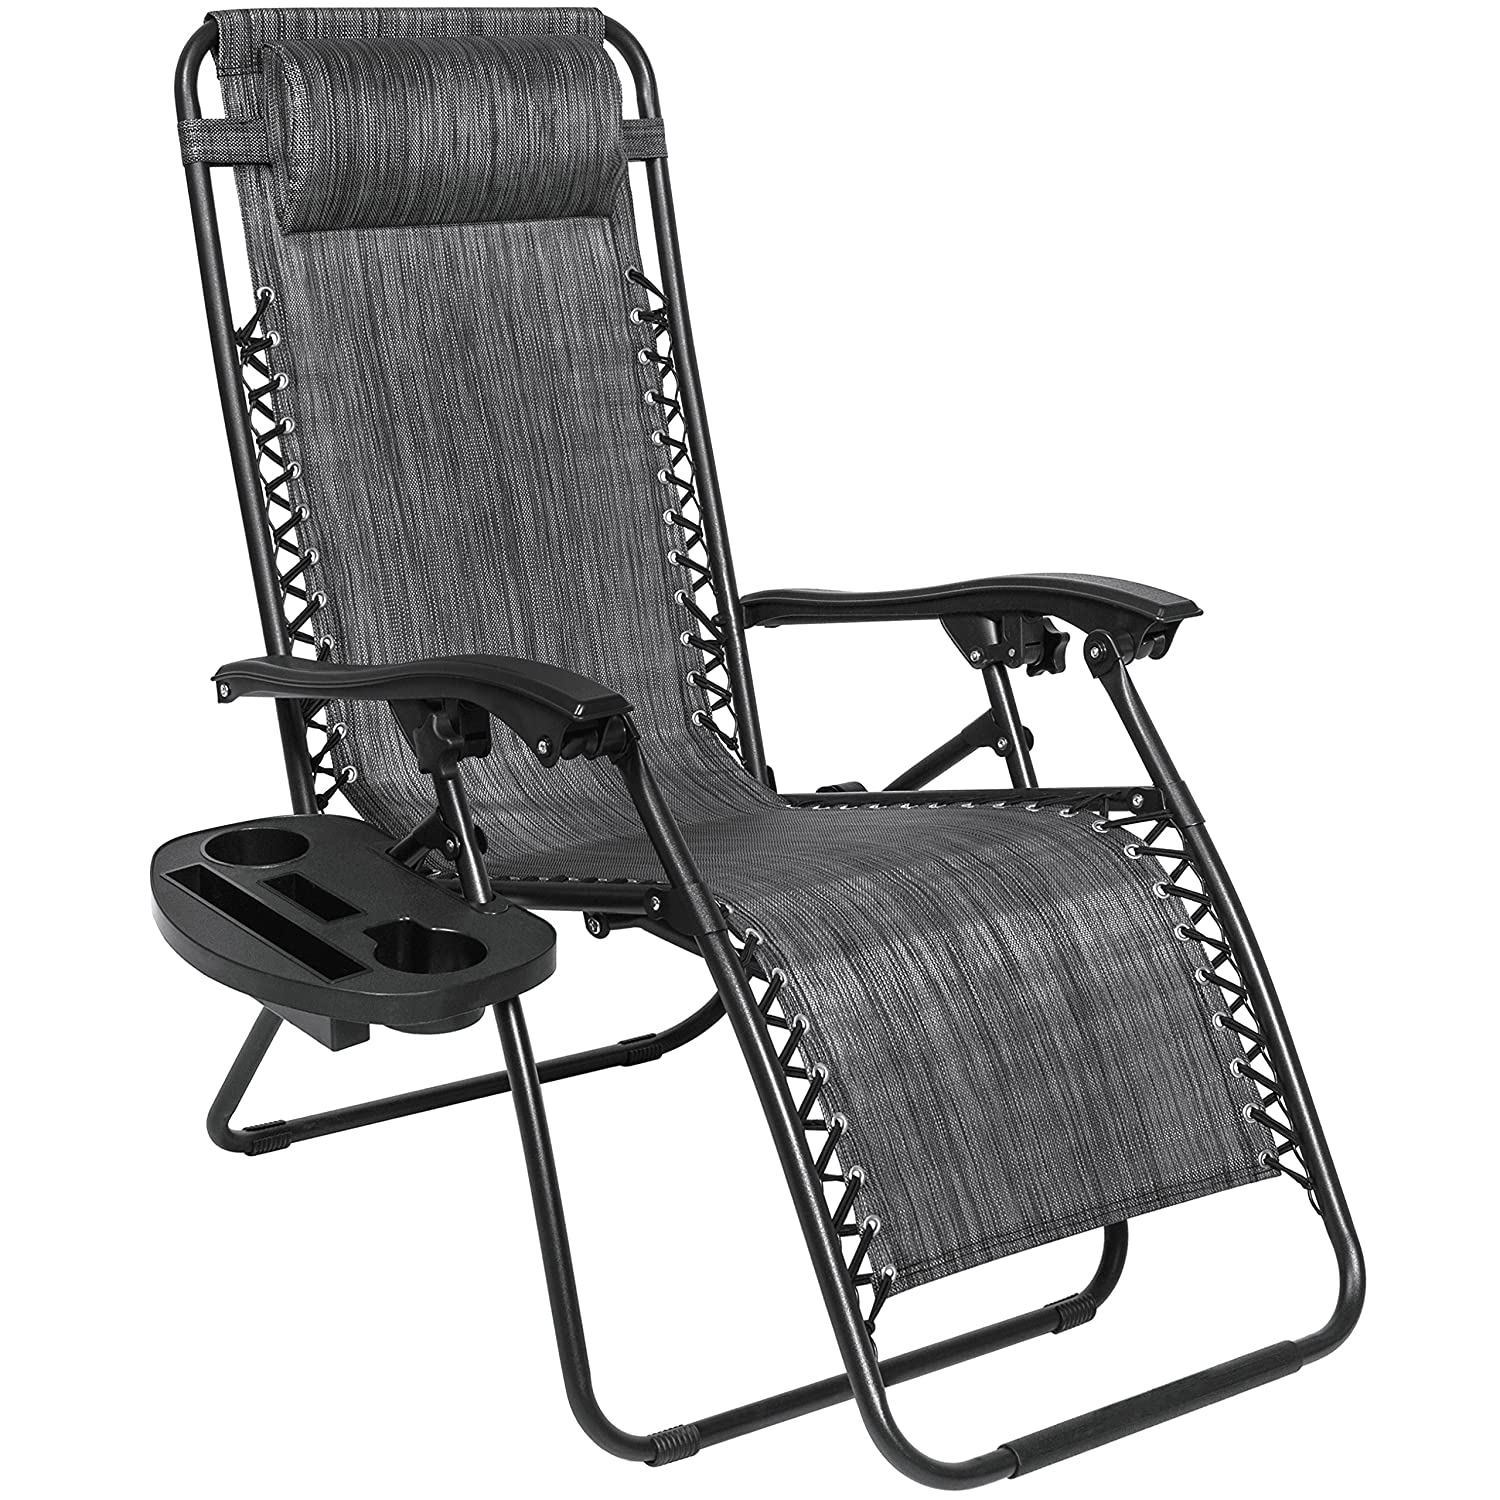 best choice products set of 2 adjustable zero gravity lounge chair recliners ebay. Black Bedroom Furniture Sets. Home Design Ideas